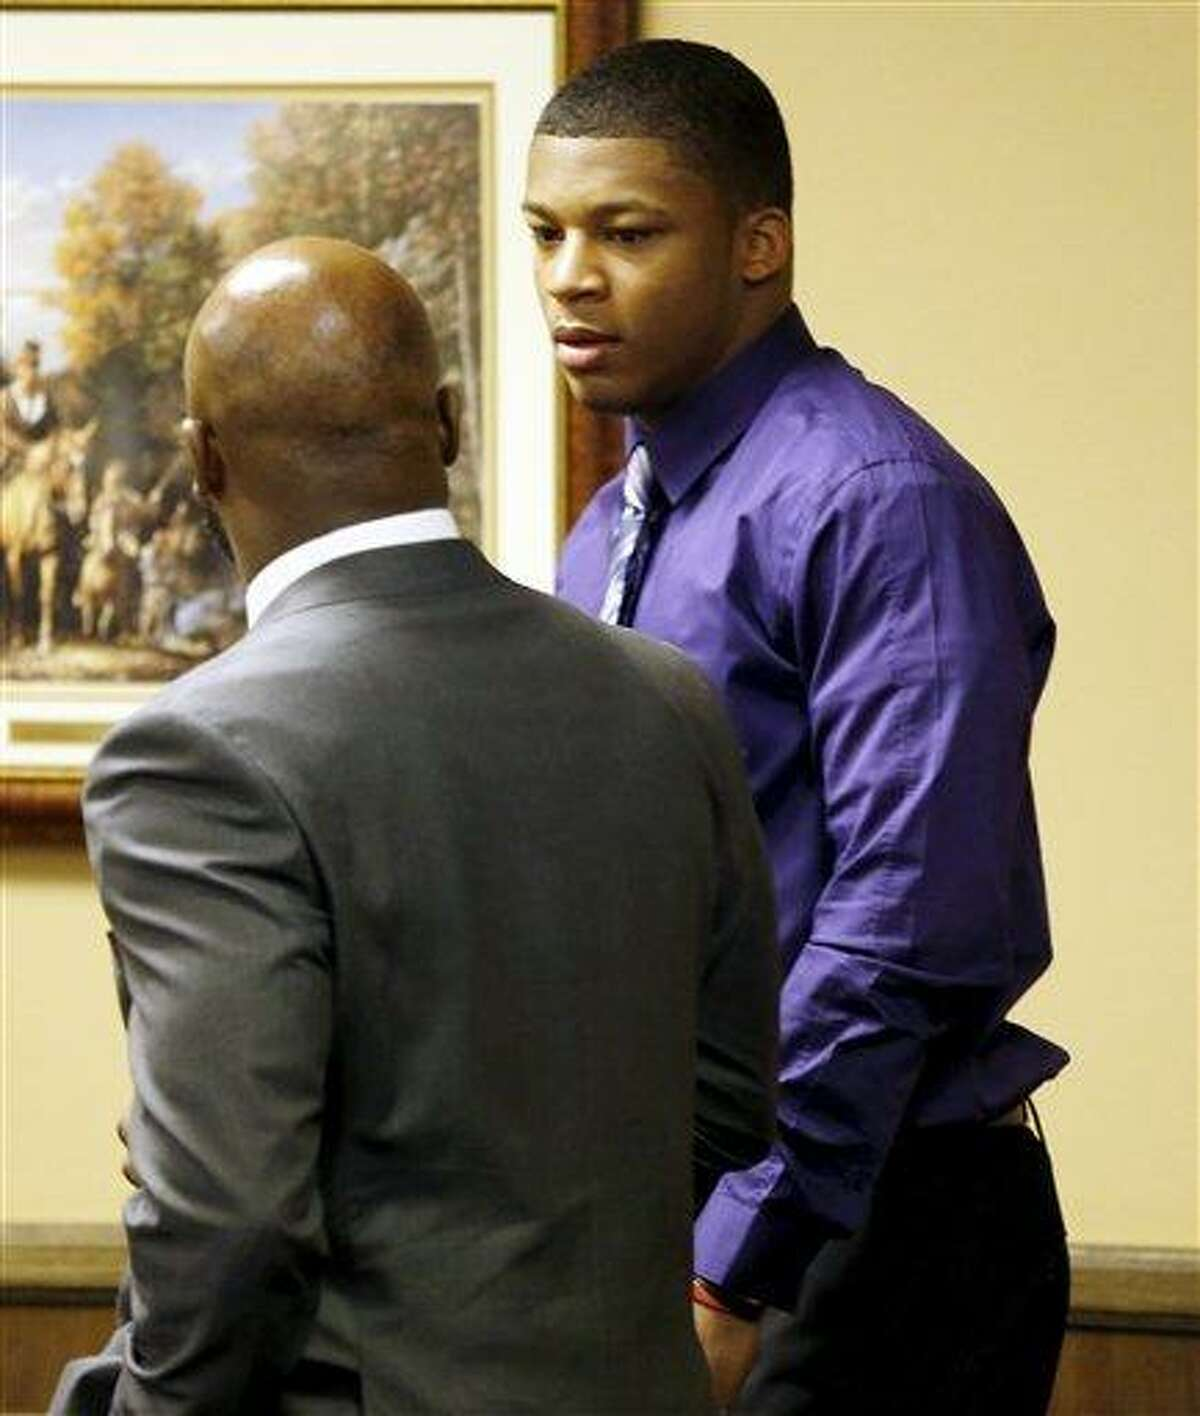 MaysMa'lik Richmond, 16, right, talks with hsia attorner Walter madison as they enter court for the fourth day of his and co-defendant, 17-year-old Trent Mays trial on rape charges in juvenile court on Saturday, March 16, 2013 in Steubenville, Ohio. Mays and Richmond are accused of raping a 16-year-old West Virginia girl in August, 2012. (AP Photo/Keith Srakocic, Pool)